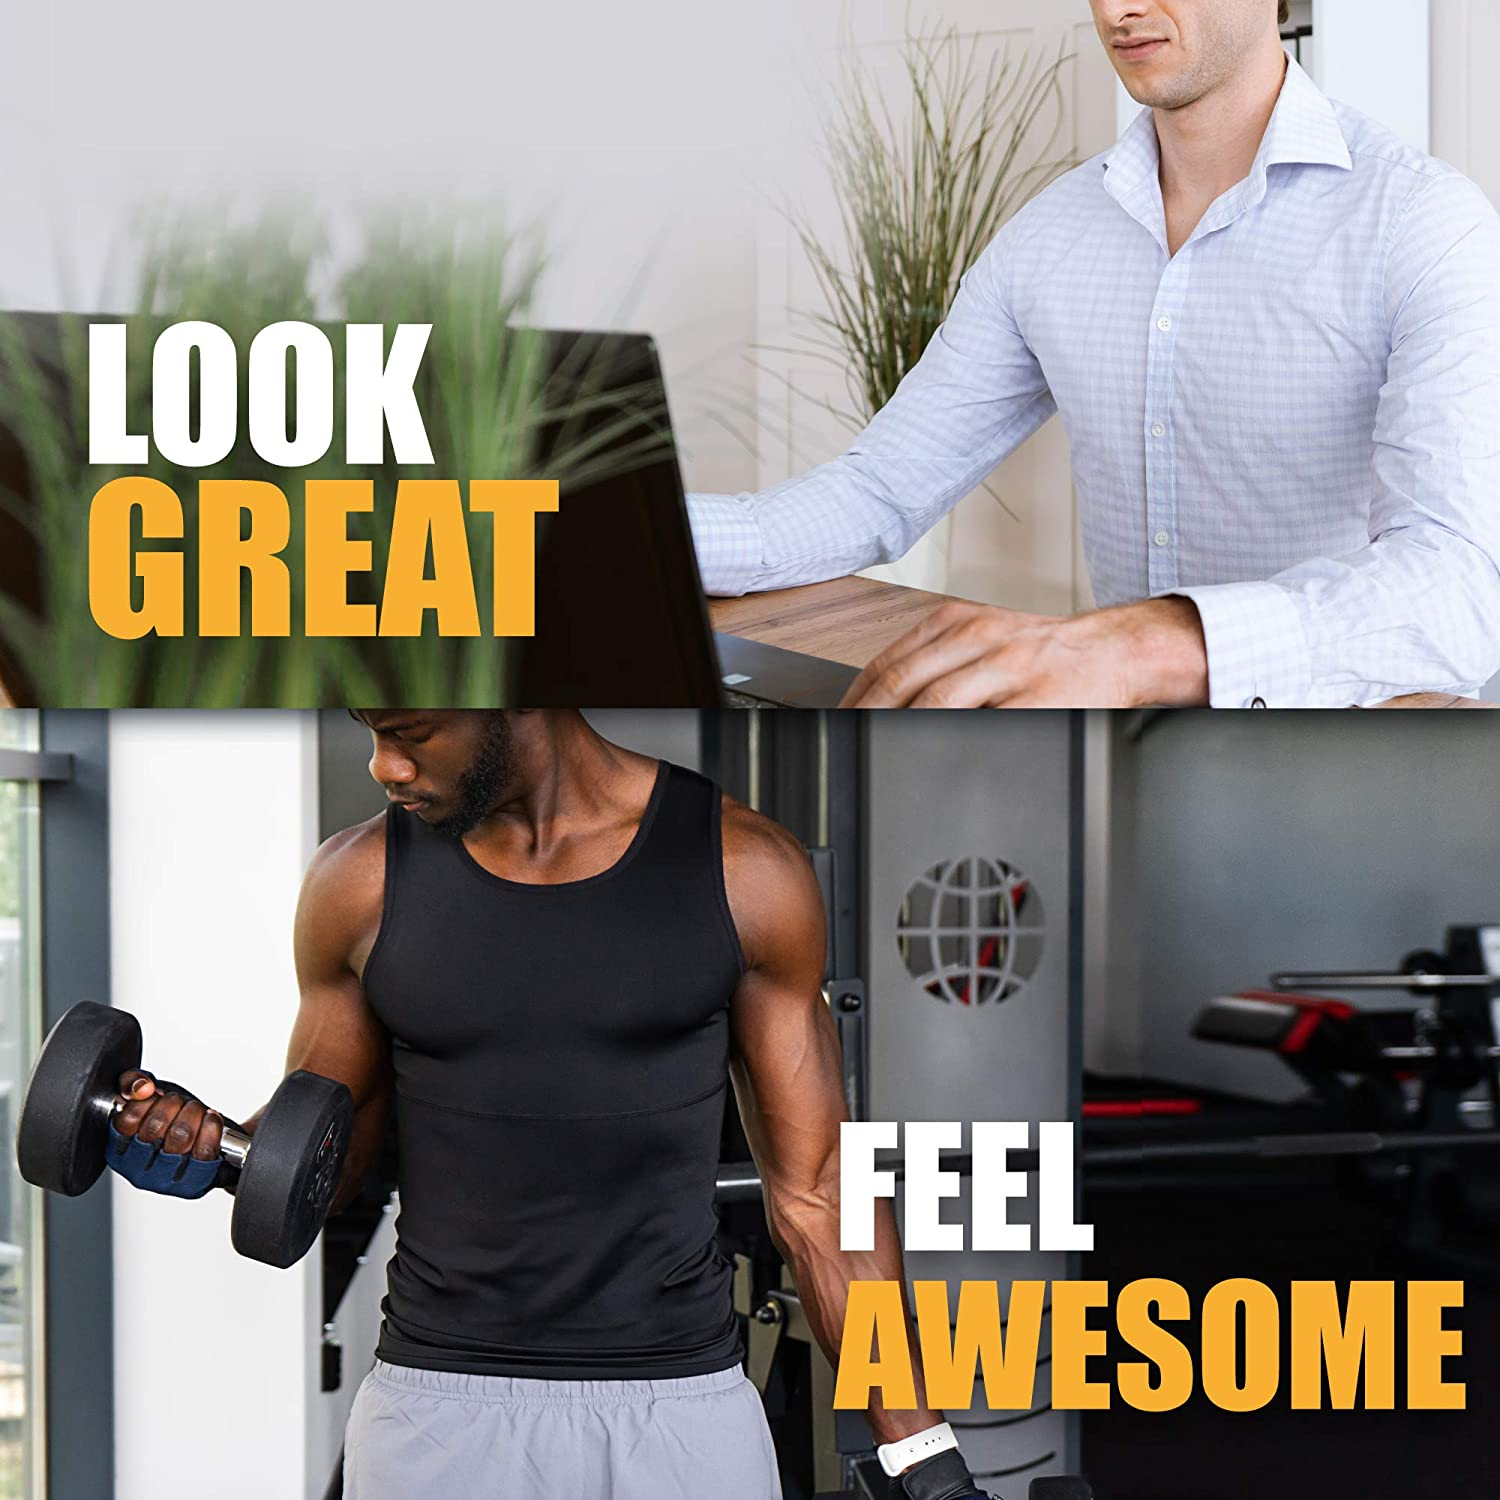 Compression T Shirts Men Mens Tops to Slim Your Waist /& Hide Excess Weight Sweating Effect Mens Vest Top /& Weight Training Shirt Men Mens Slimming Base Layer Mens Compression Tops for Men